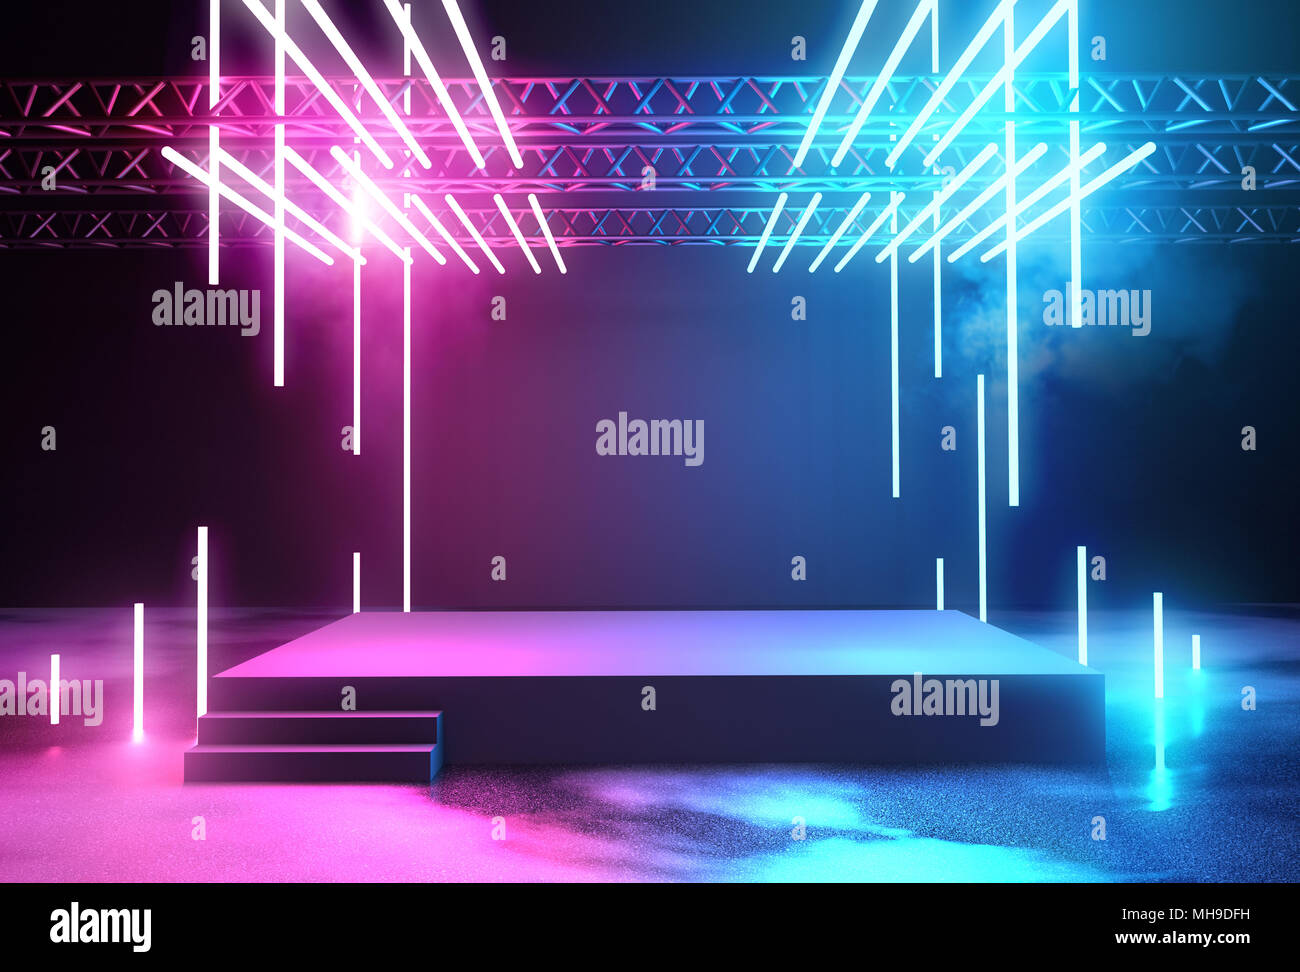 Stage With Neon Lighting Background Blank Platform For Concert Or Product Placement 3D Illustration